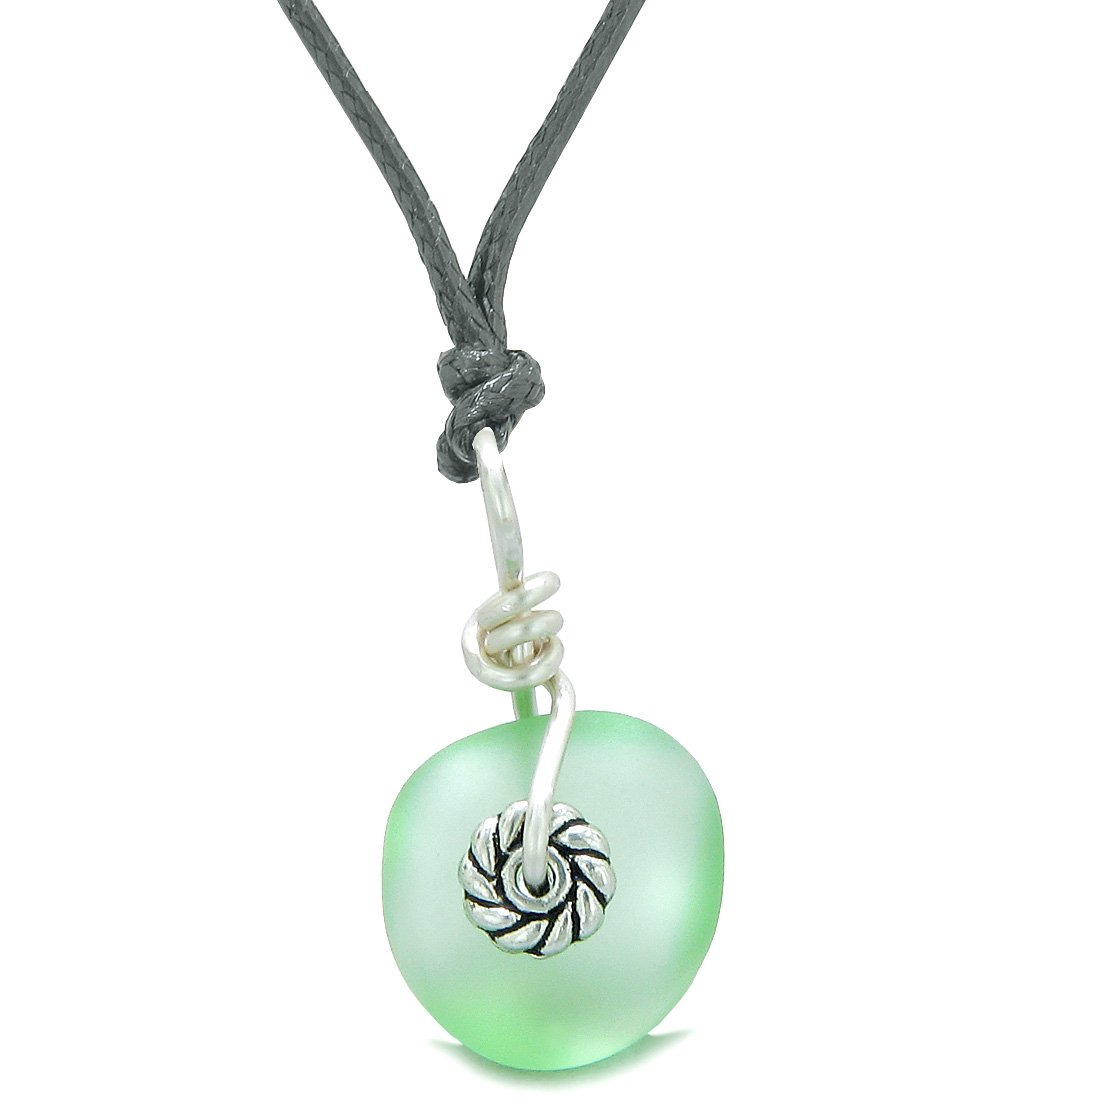 Twisted Twincies Small Cute Frosted Sea Glass Lucky Charms Handcrafted Mint Green Adjustable Necklace